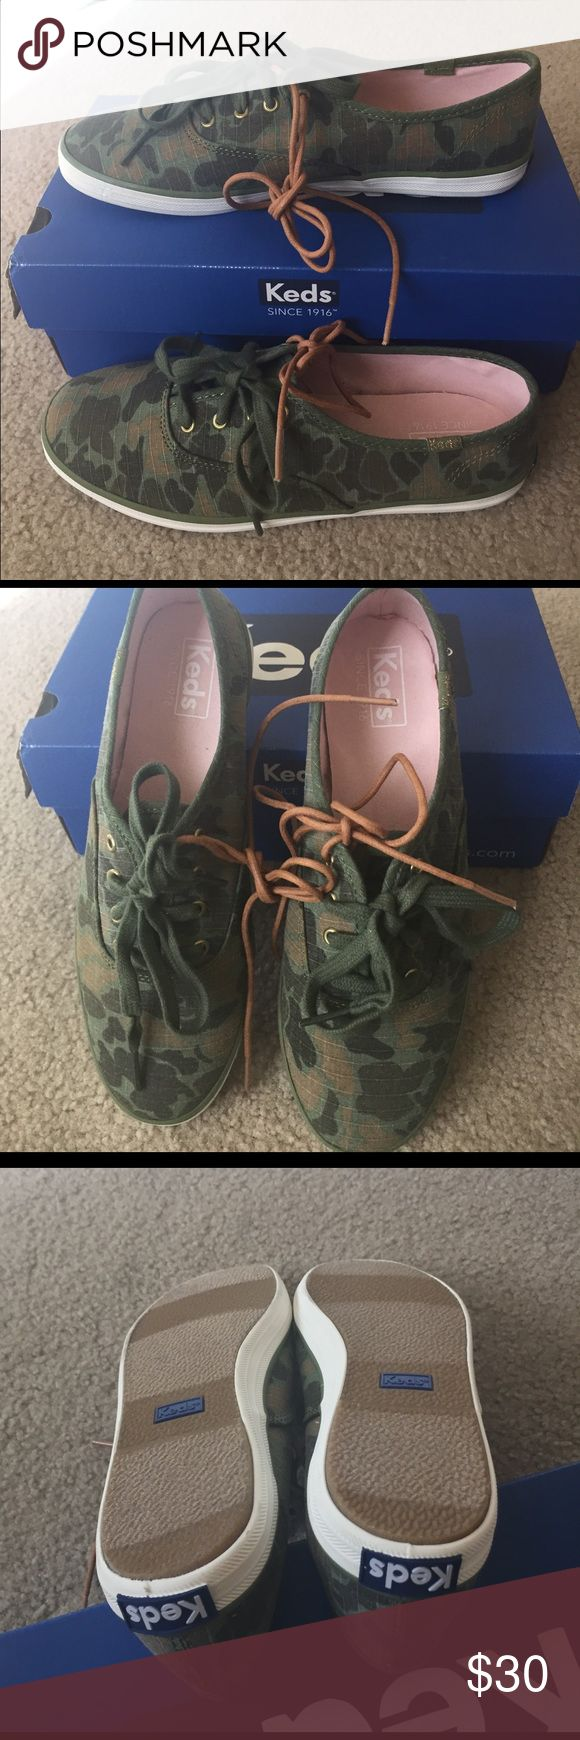 NWT Keds Sneakers New Keds cute and stylish sneakers. Extra shoe laces . Cushy and comfy footbed. Keds Shoes Sneakers